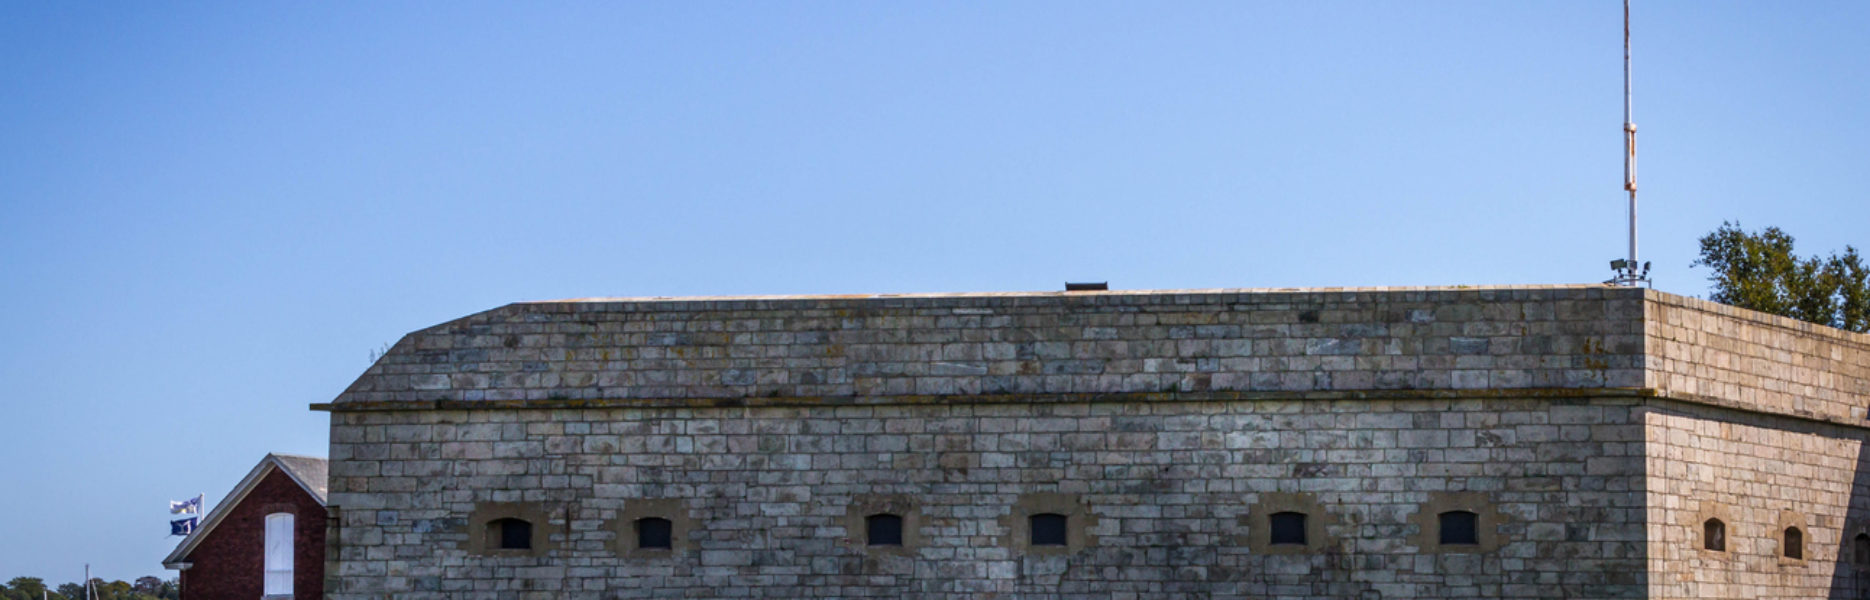 Newport, RI Harbor Sights: Spotlight on Fort Adams